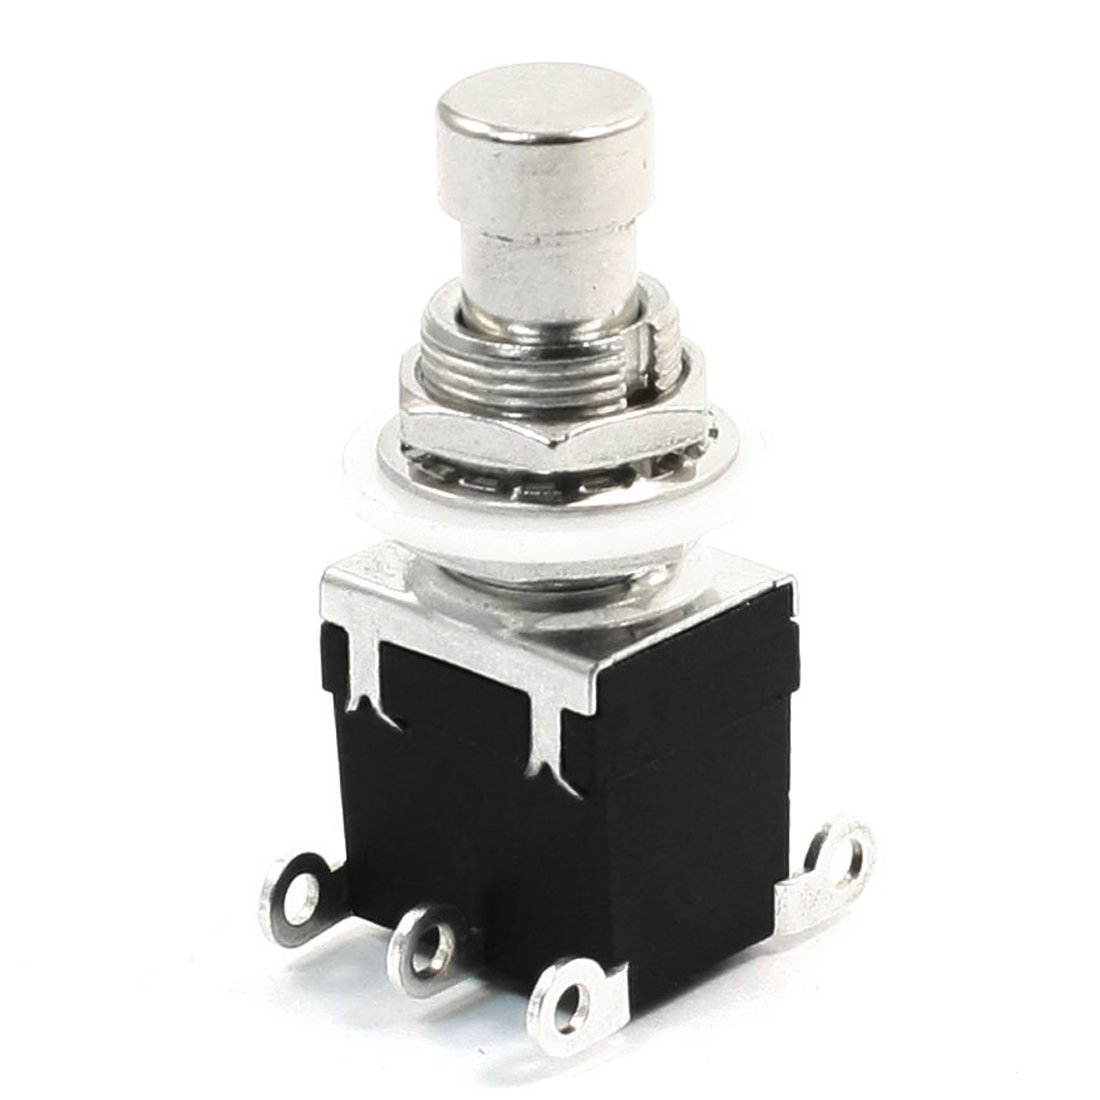 Sonline 6Pins DPDT Momentary Stomp Foot Switch for Guitar AC 250V/2A 125V/4A